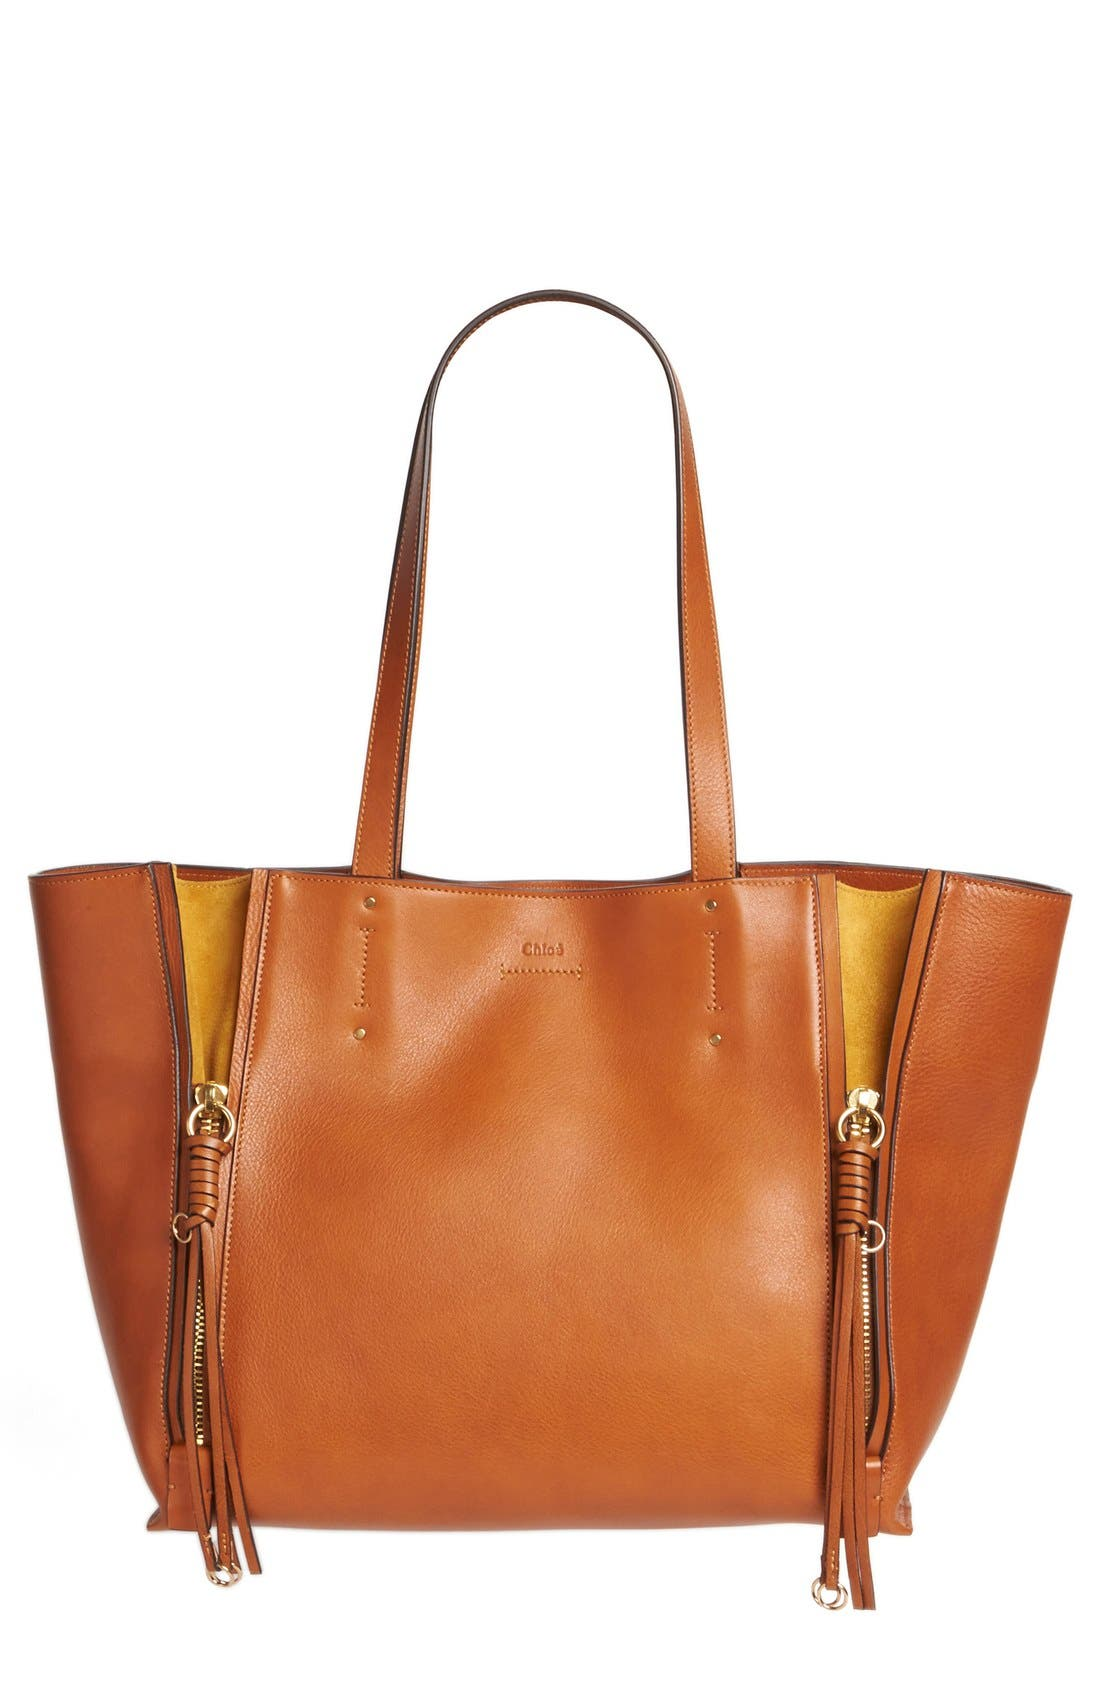 Medium Milo Calfskin Leather Tote,                         Main,                         color, Caramel